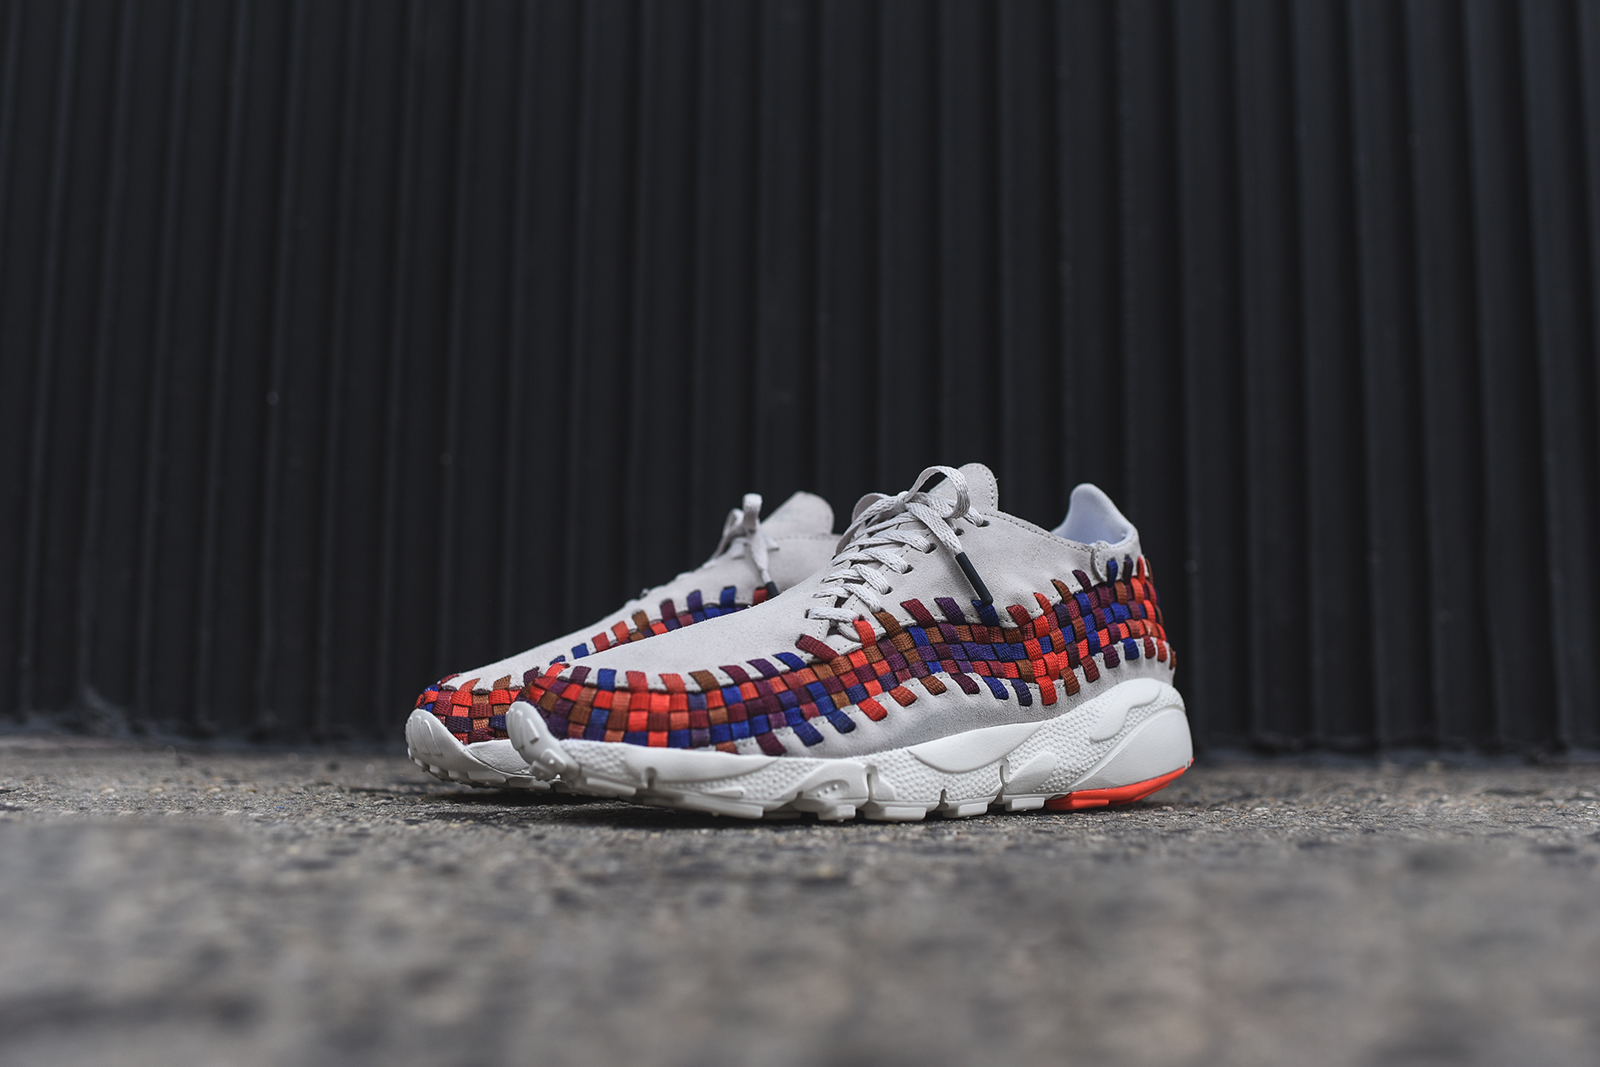 NIke_Footscape_Woven_Pack_Light_Bone_3.jpg